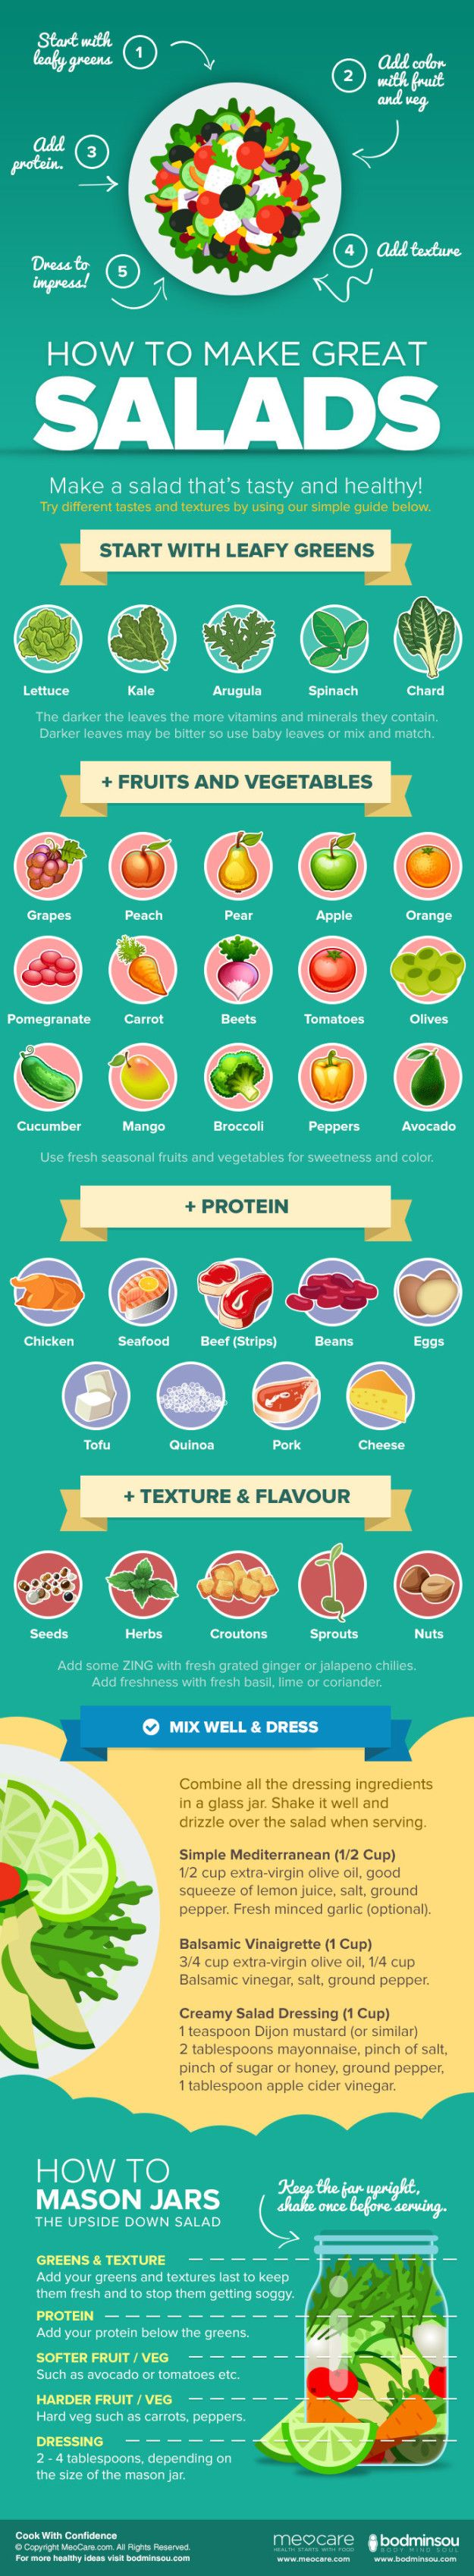 264 best Food + Drink Recipes images on Pinterest | Clean eating ...